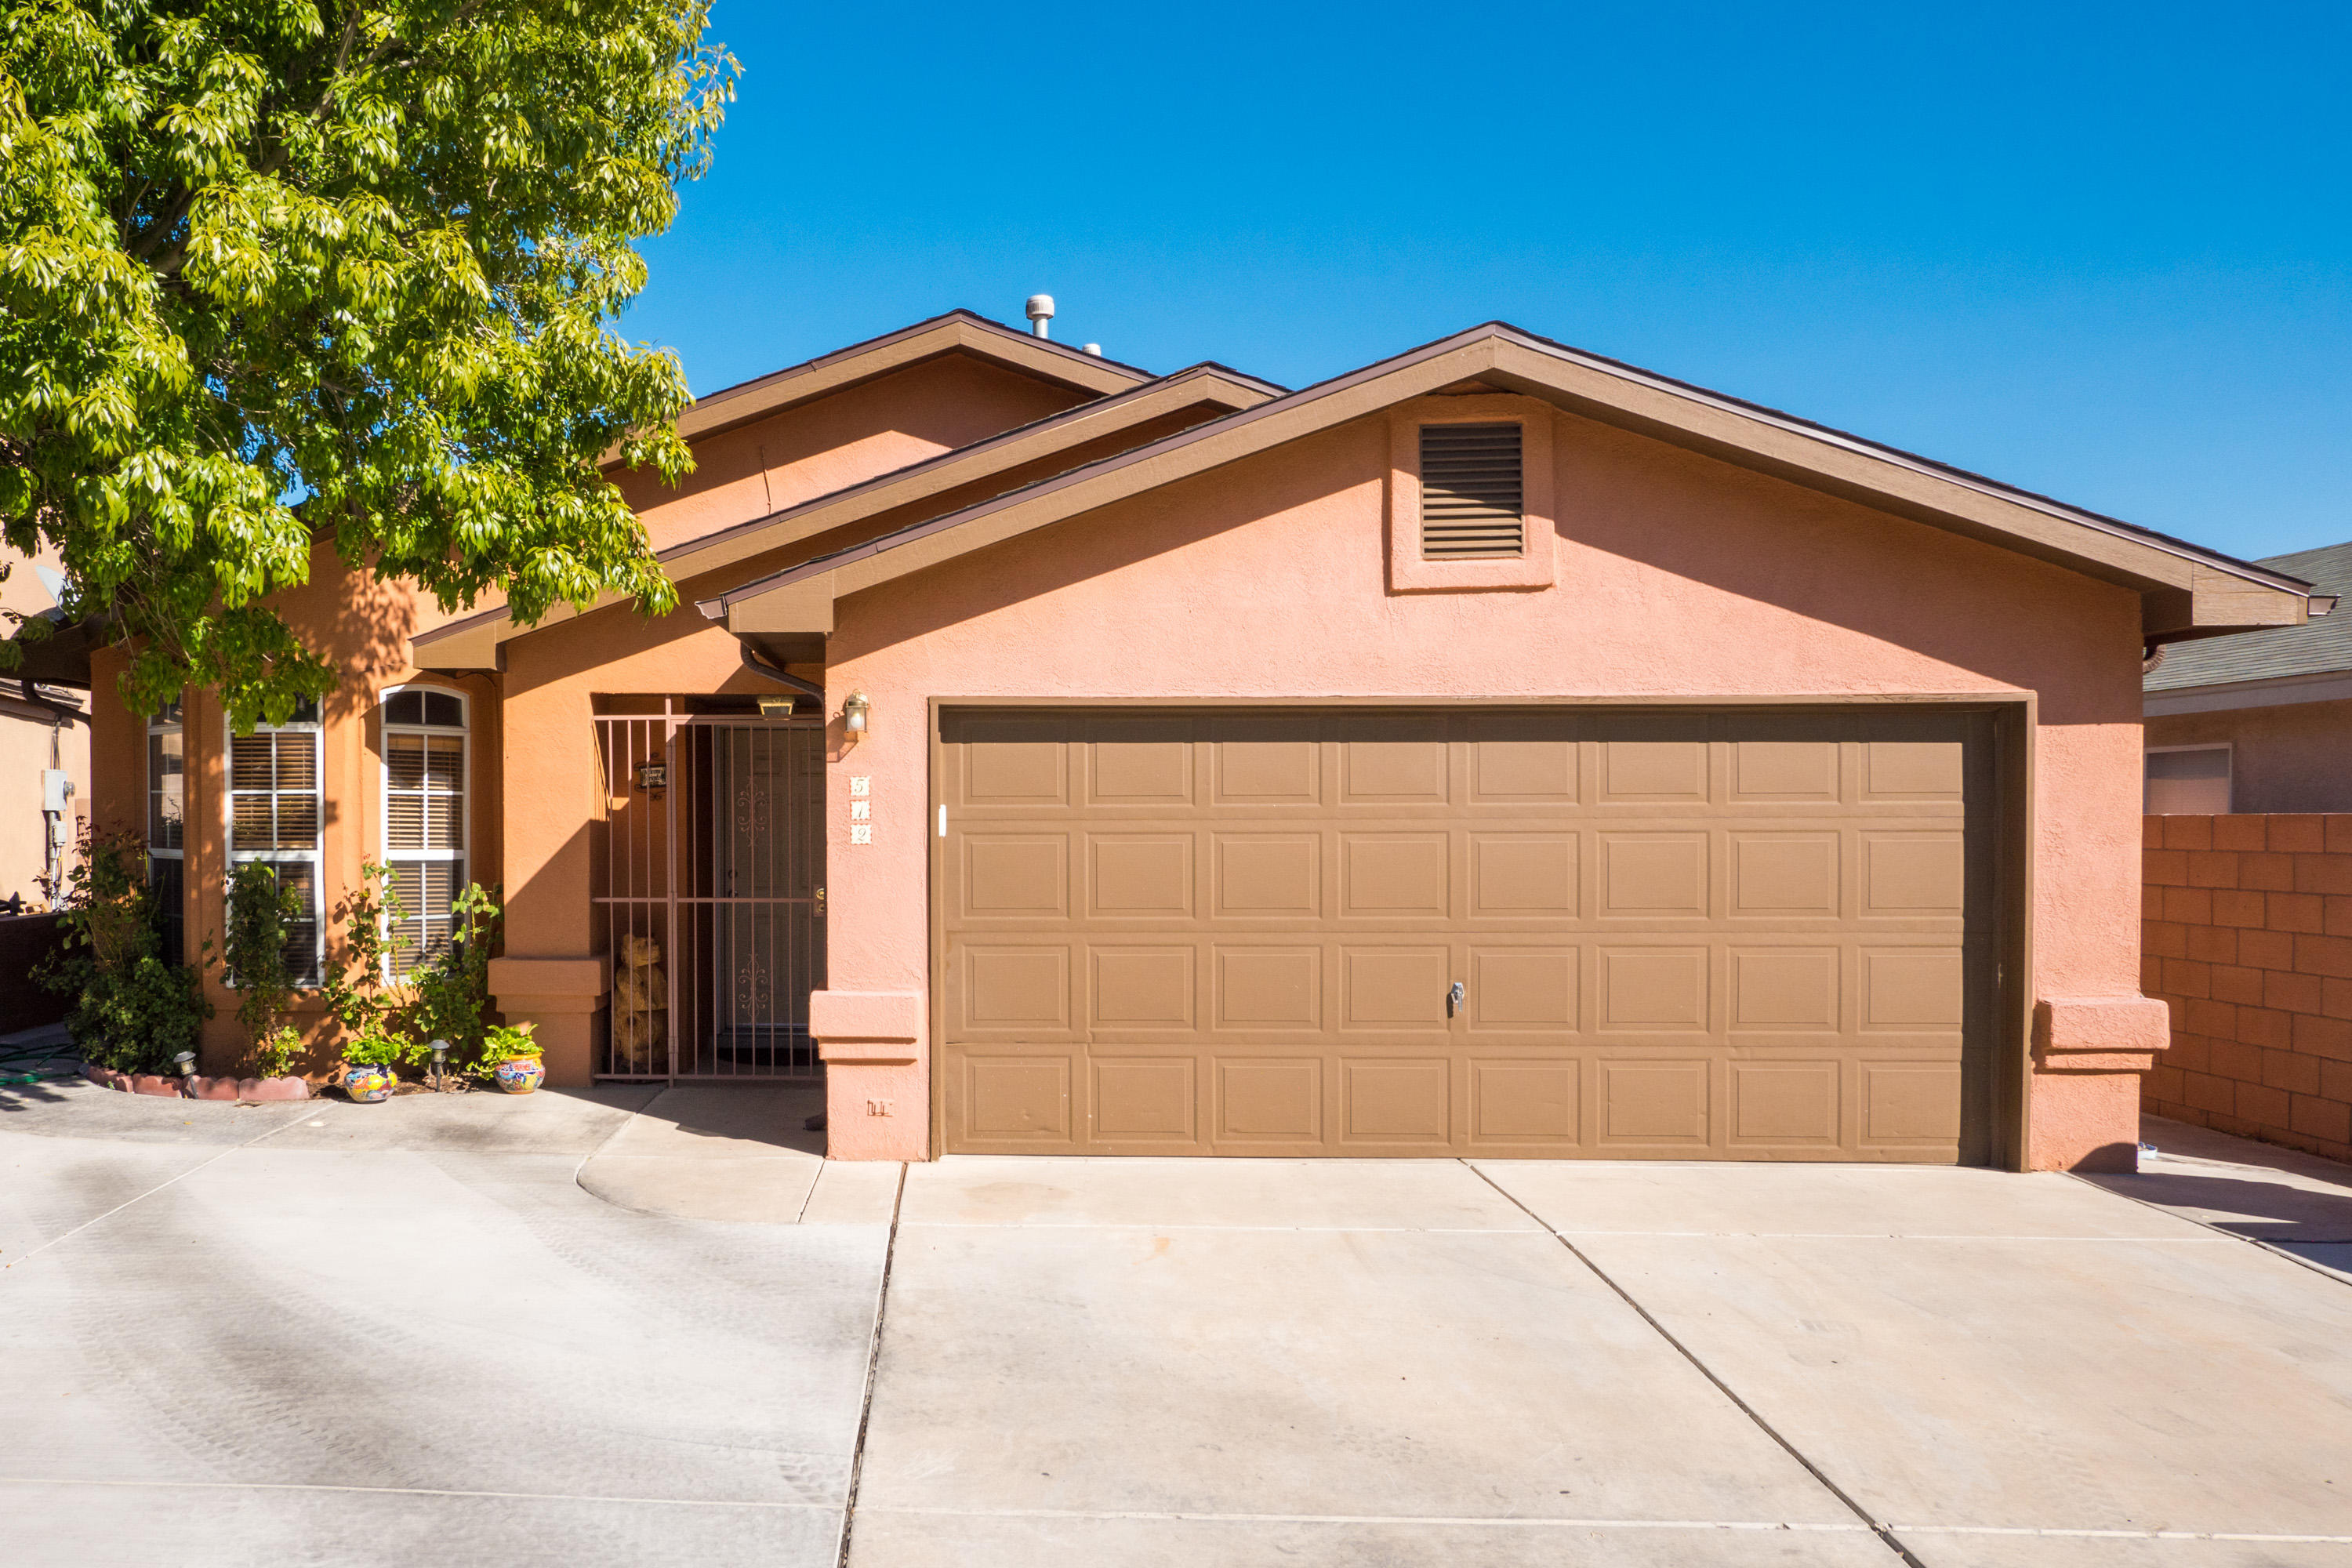 Beautiful home near shopping centers. Walk into this home and enjoy an open floor plan with tile throughout. This homes comes with a newer roof, refrigerated air, and remodeled bathrooms. Enjoy a private oasis feeling in lovely the back yard.